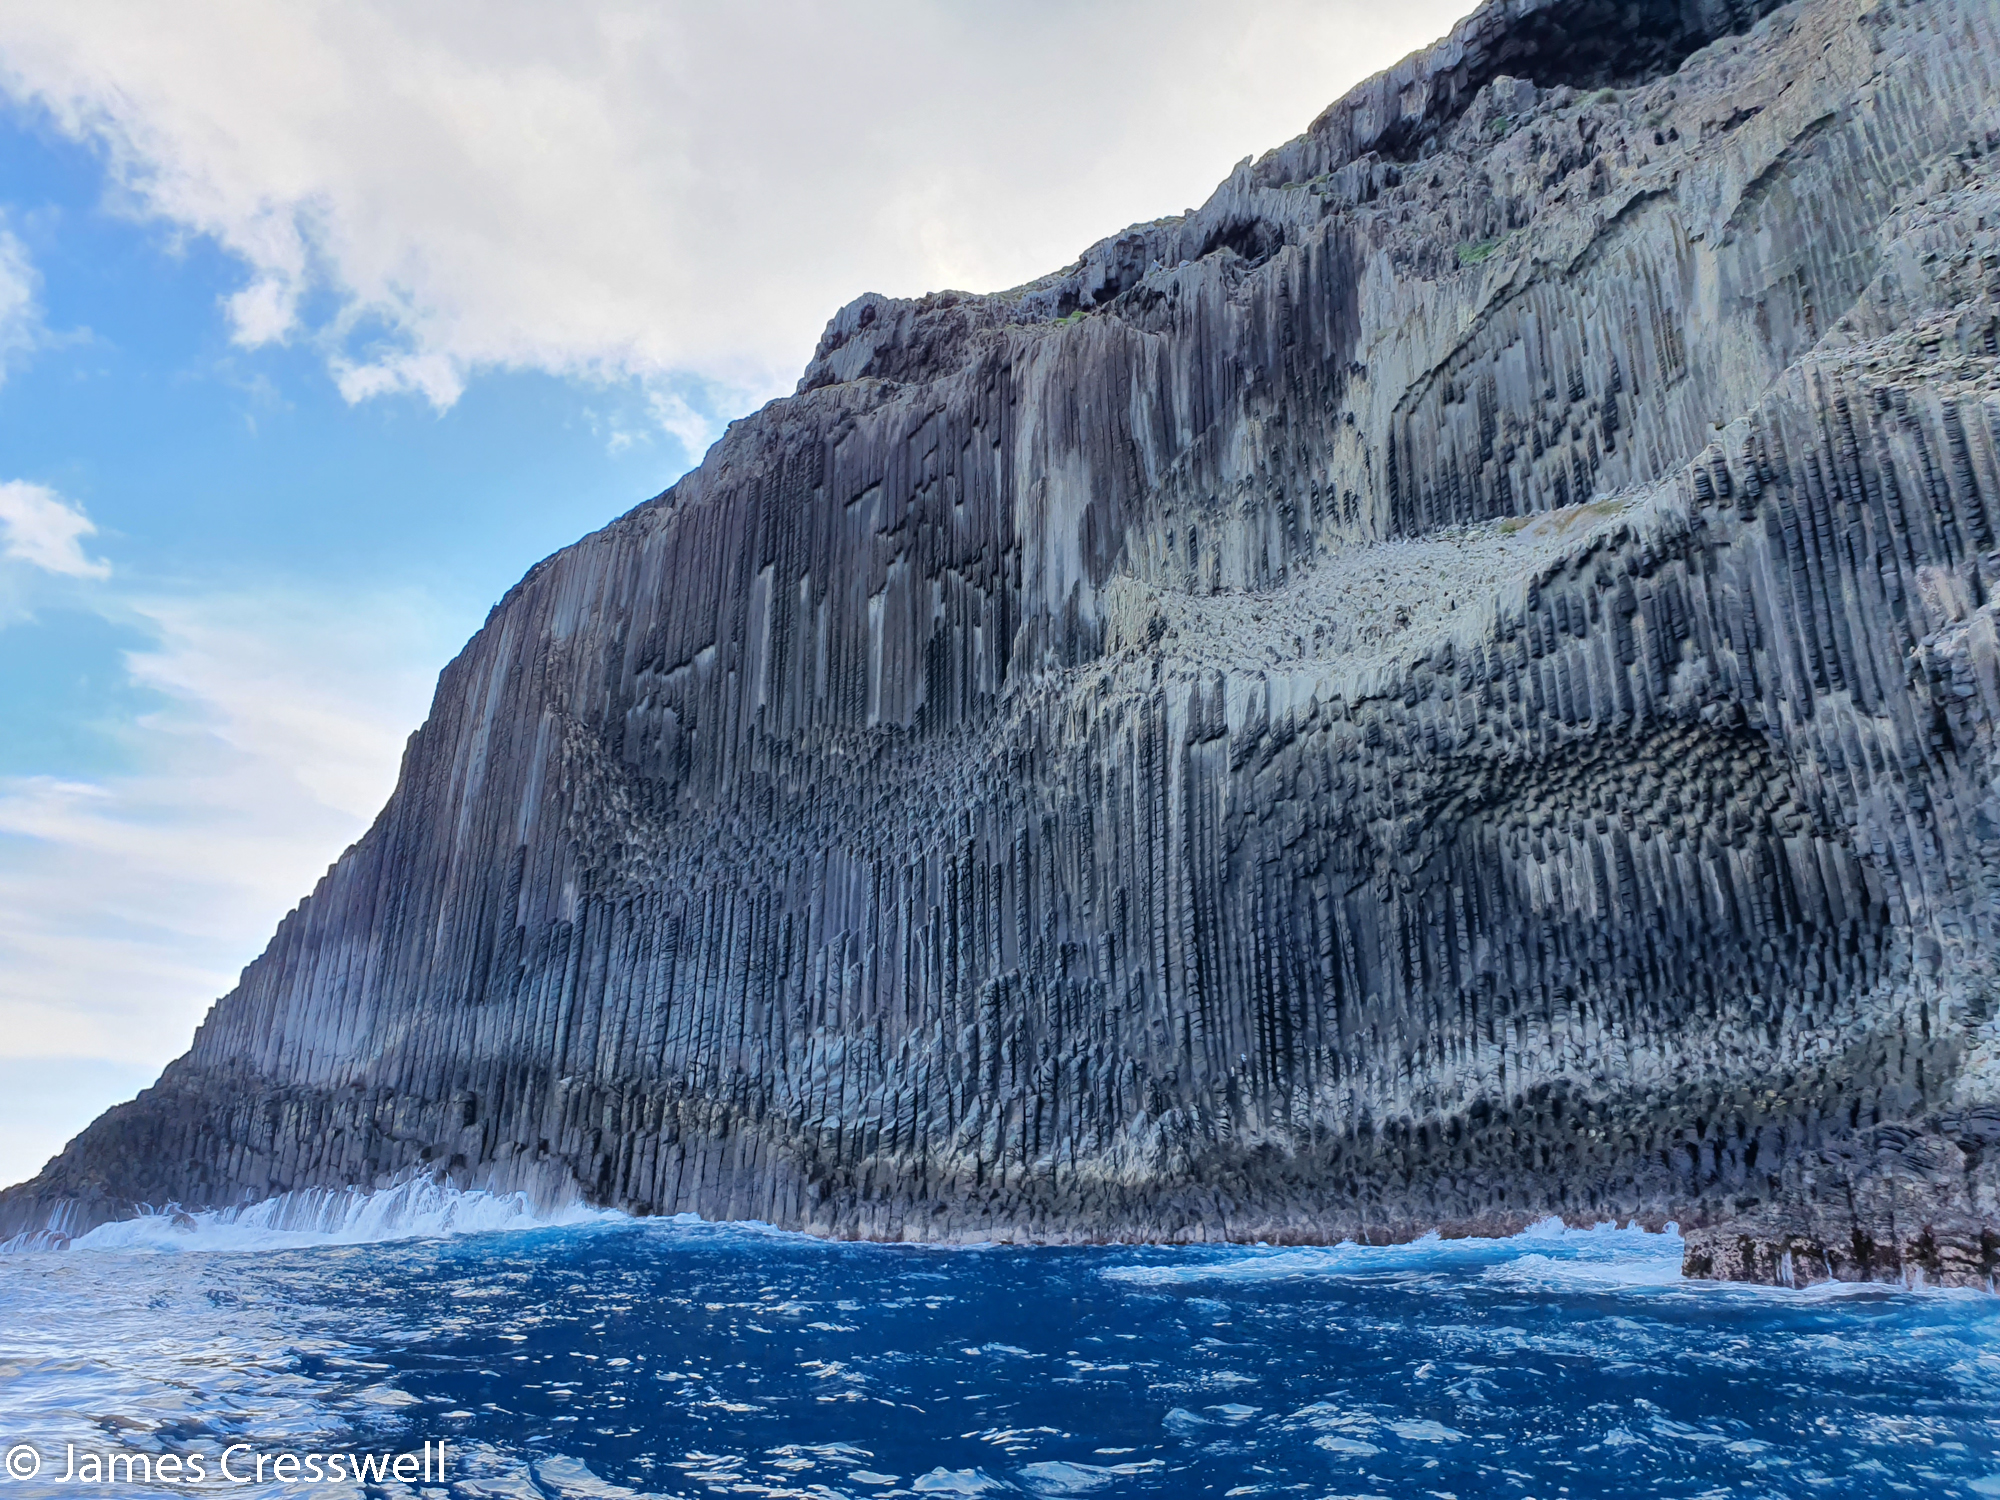 Sea cliffs with geological formation